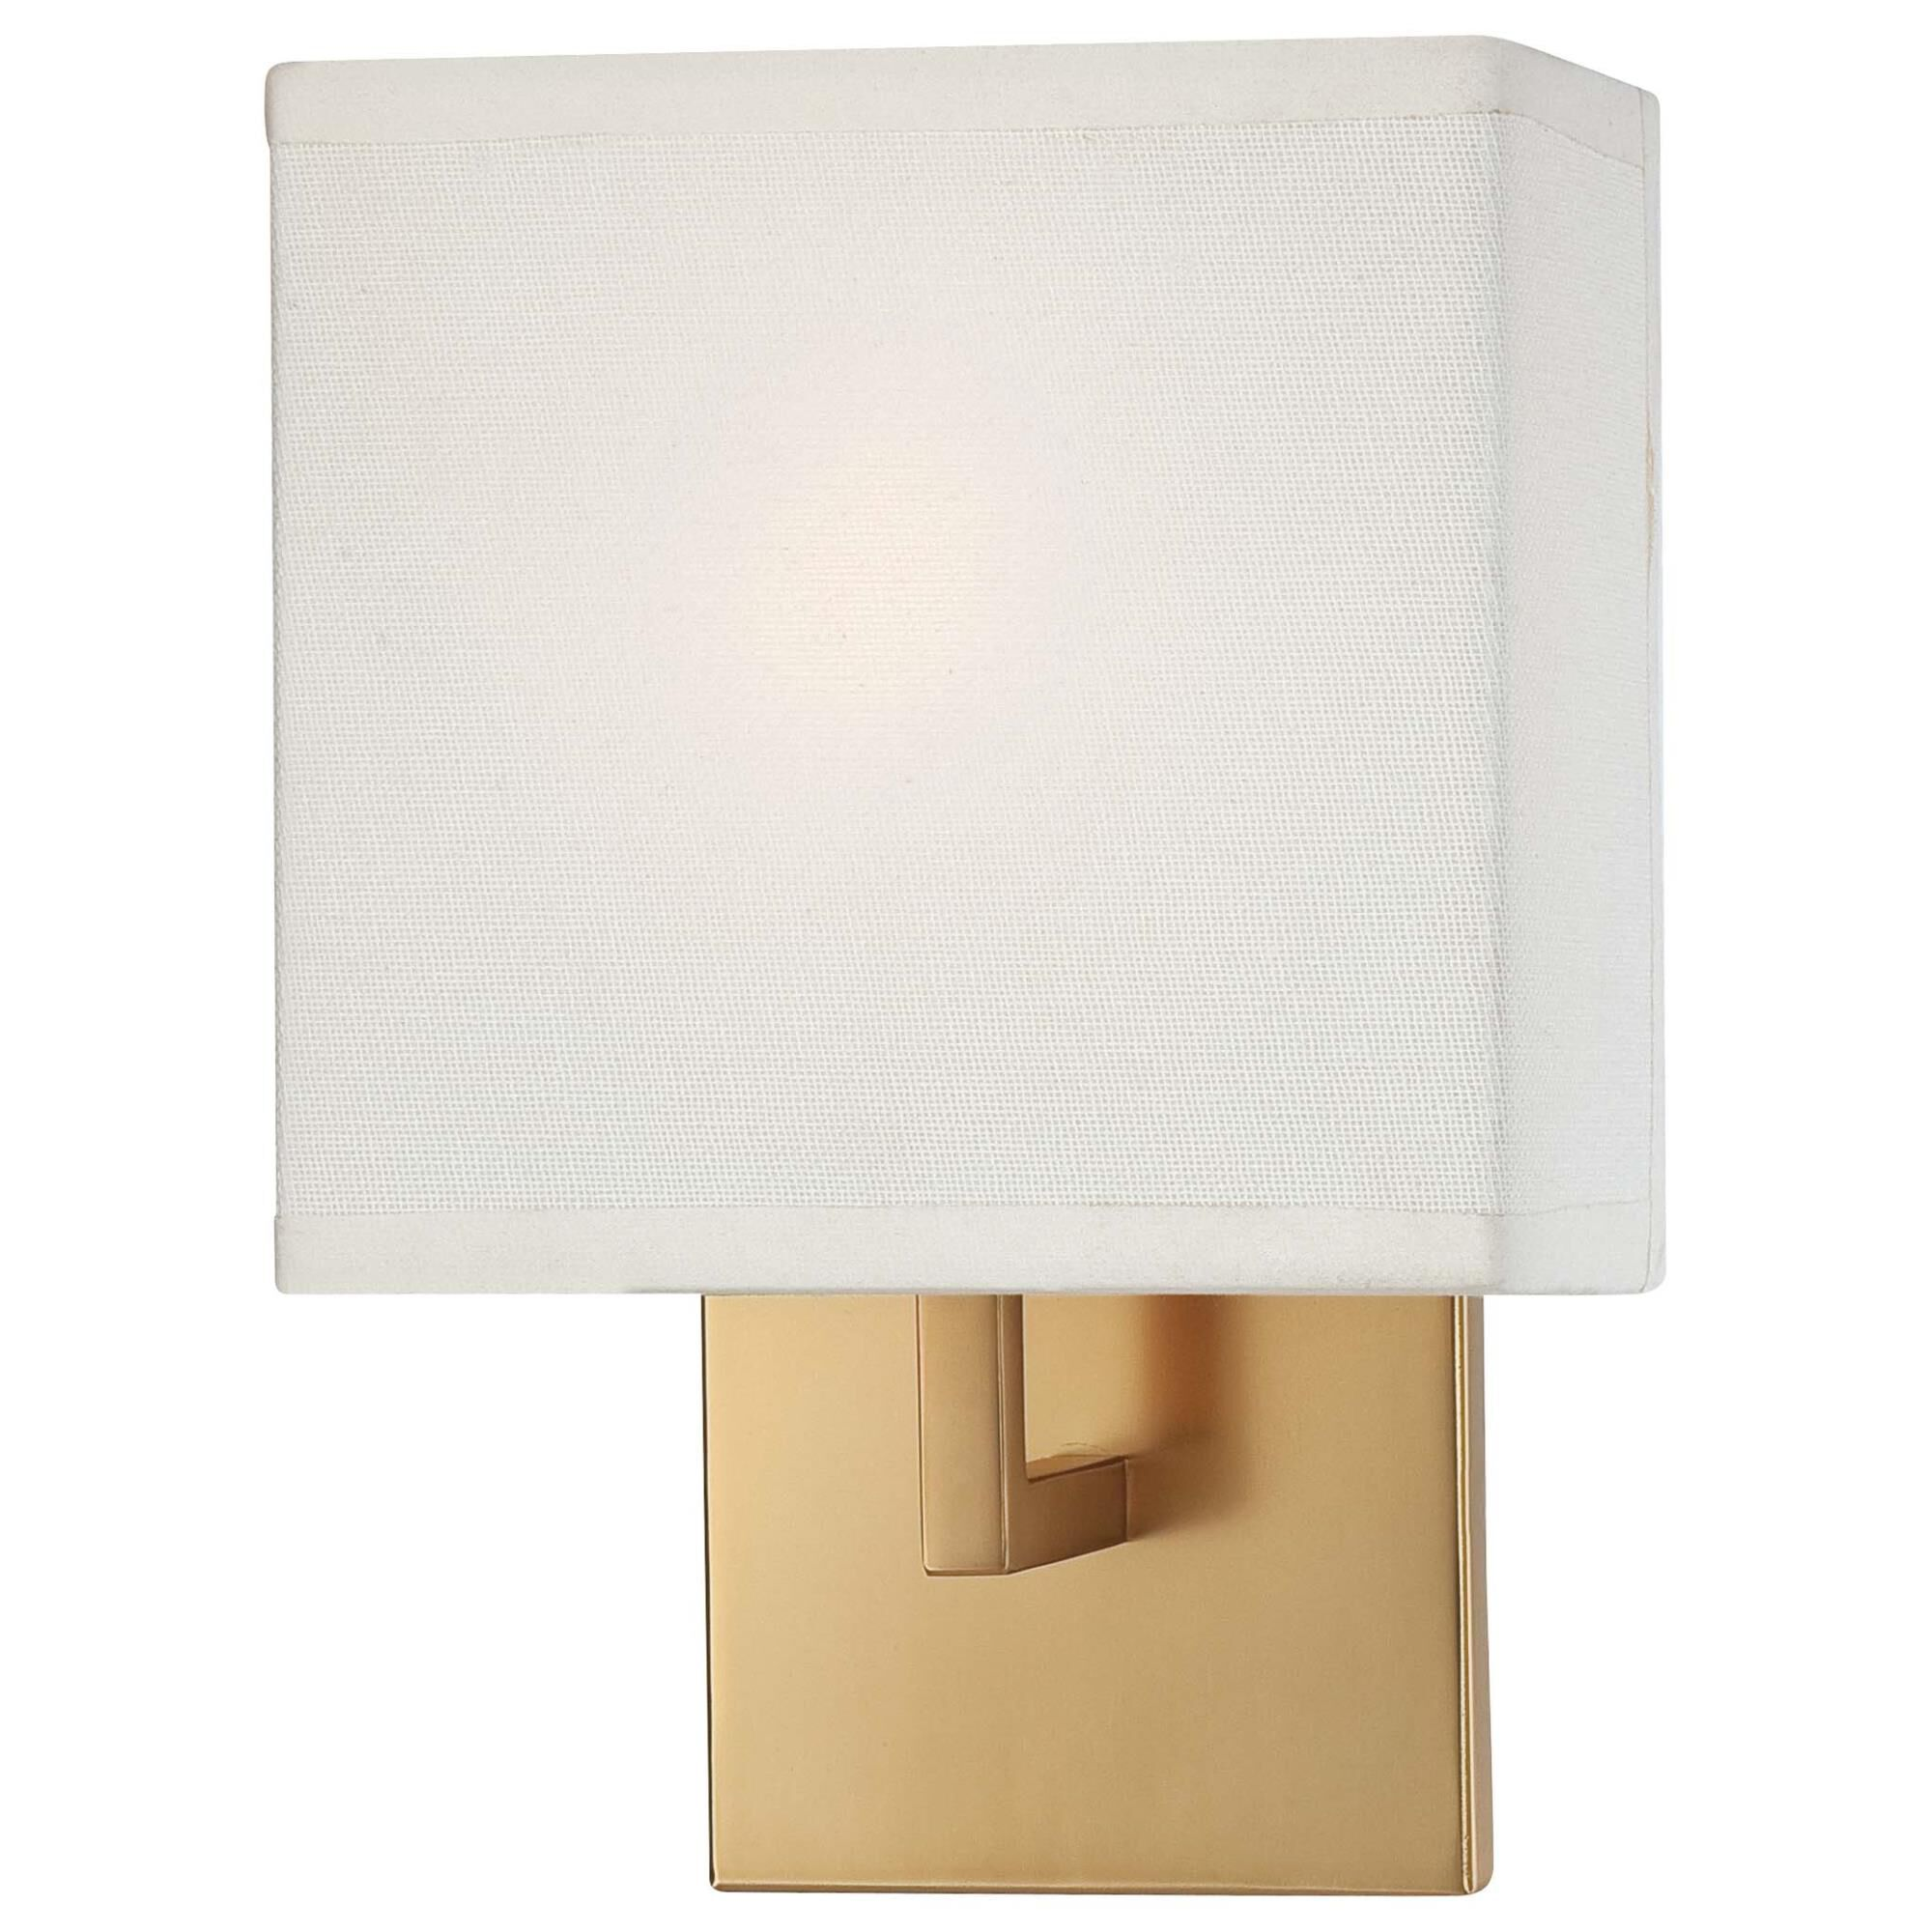 Kovacs 11 Inch Wall Sconce - P470-248 - Transitional